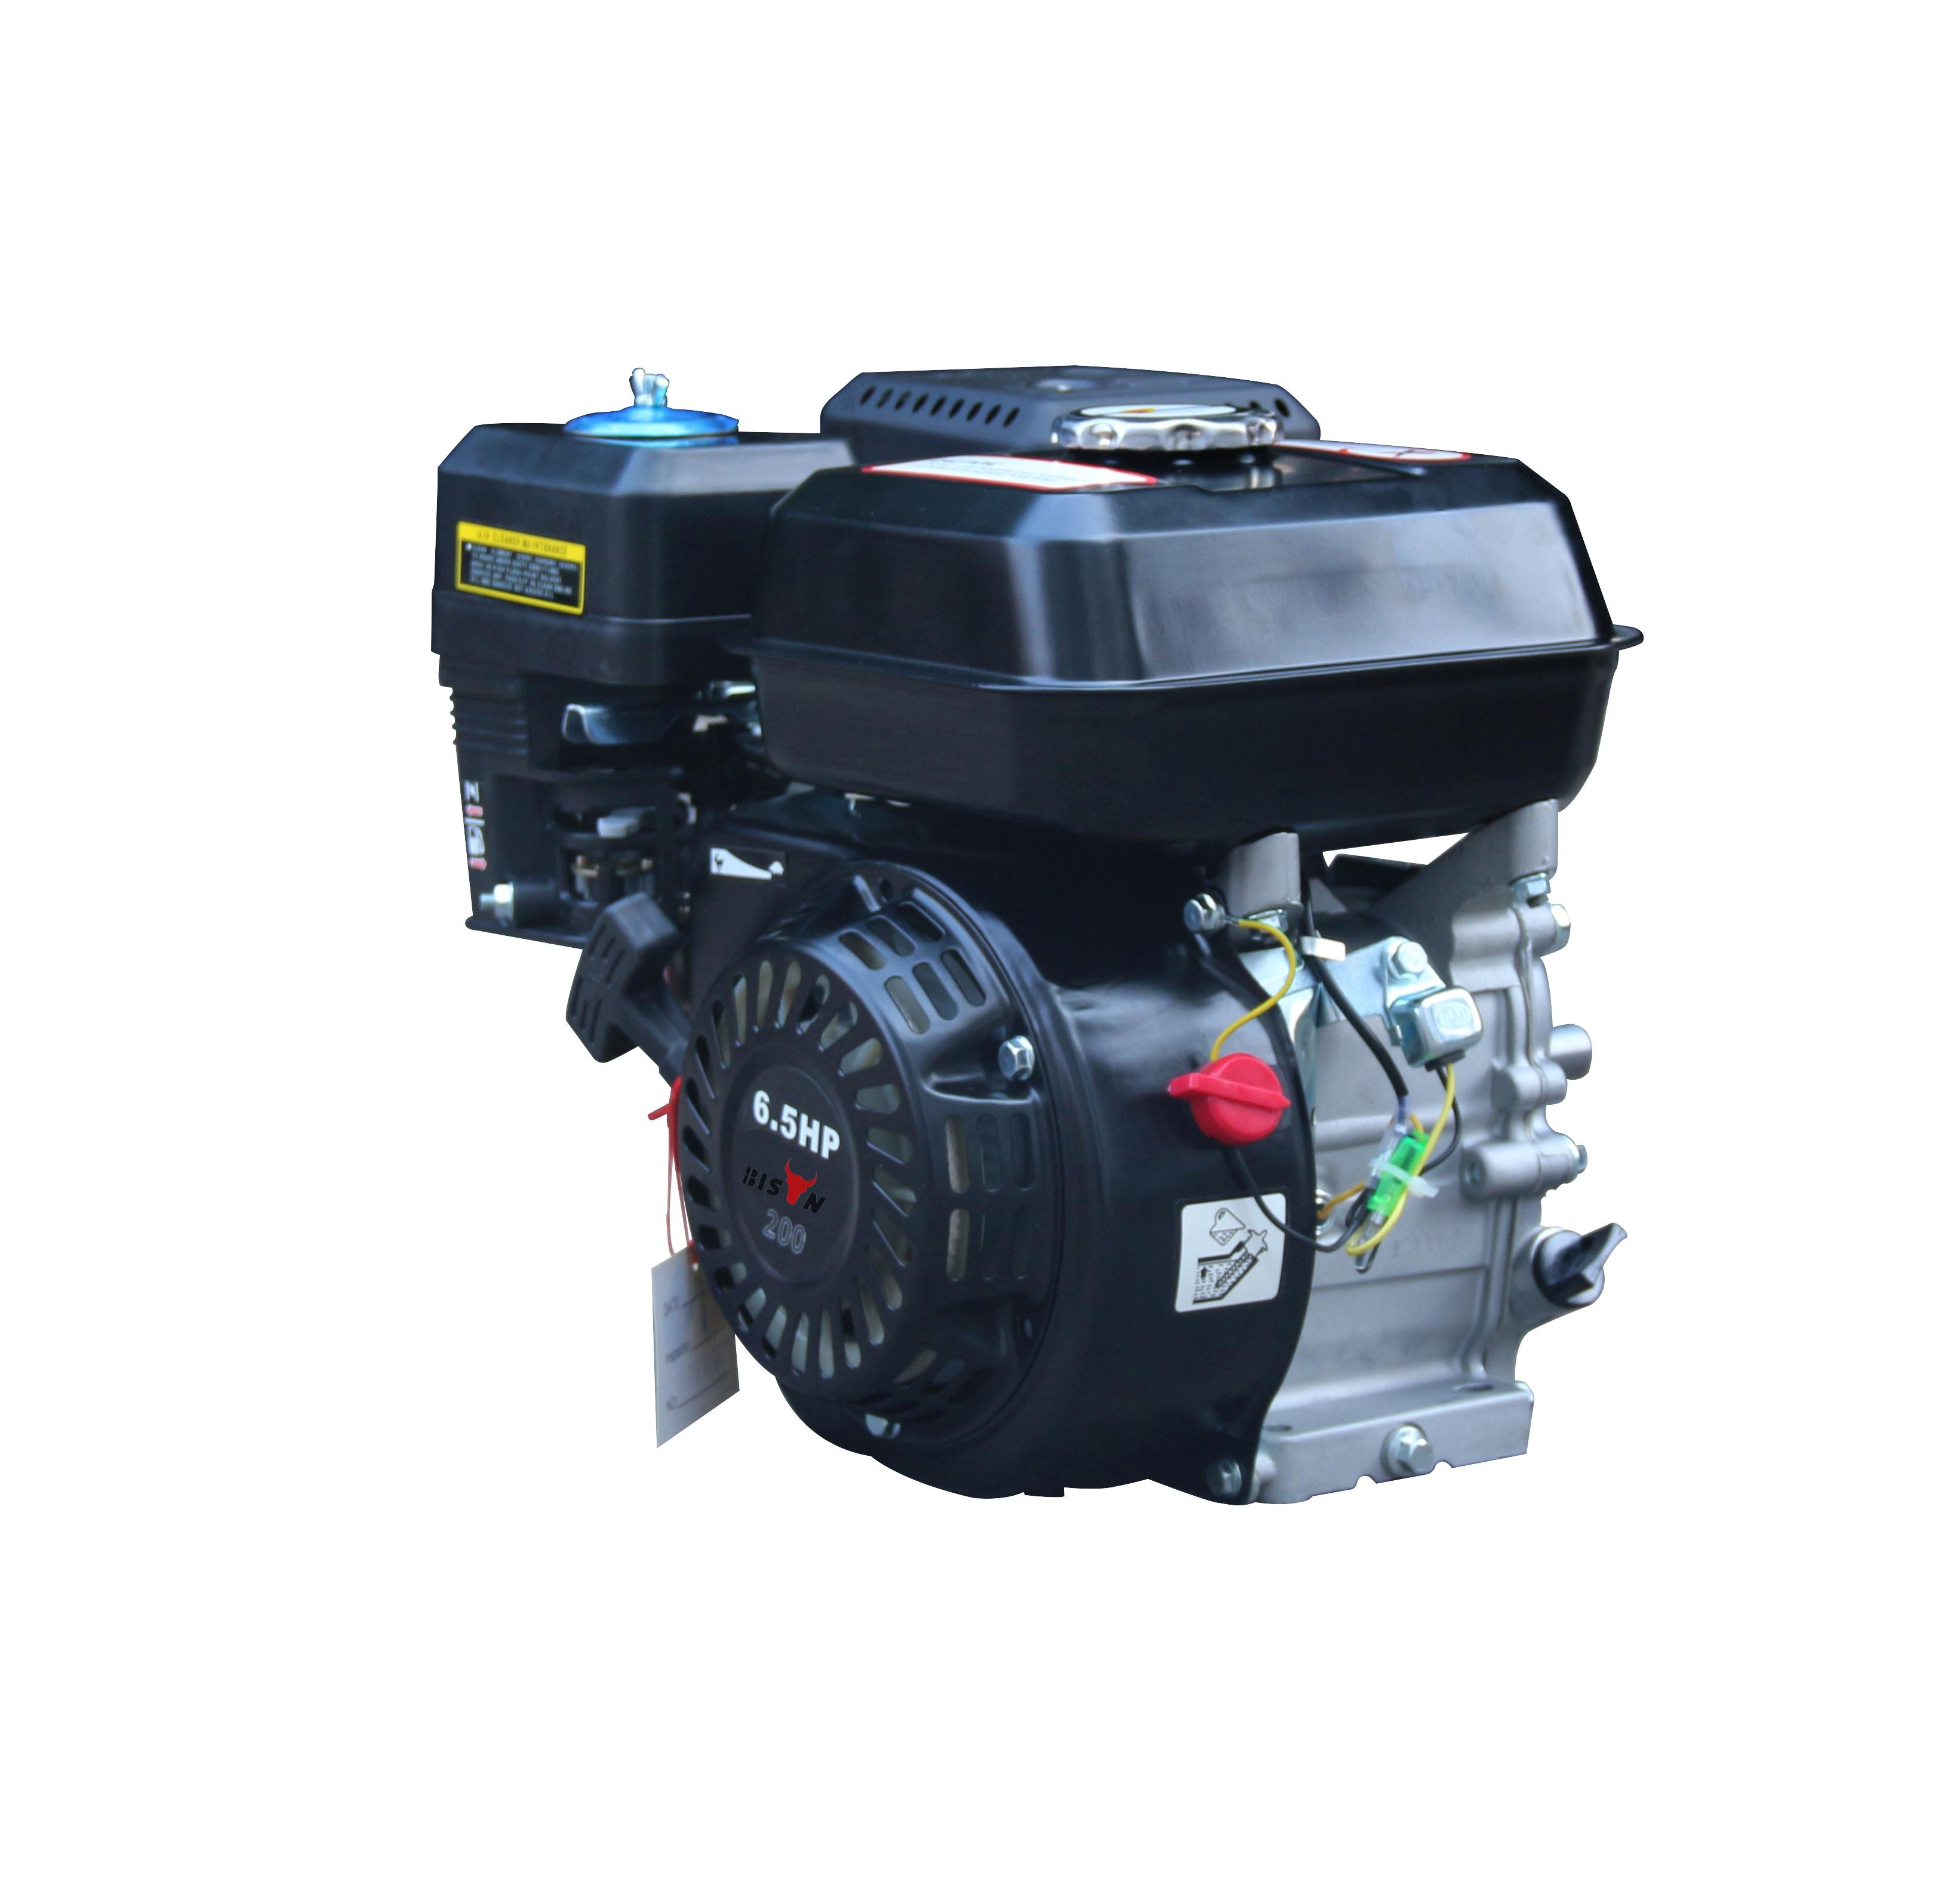 들소 중국어 168f-1Engine 핫 세일 Gasoline Engine 6.5Hp Gasoline engine